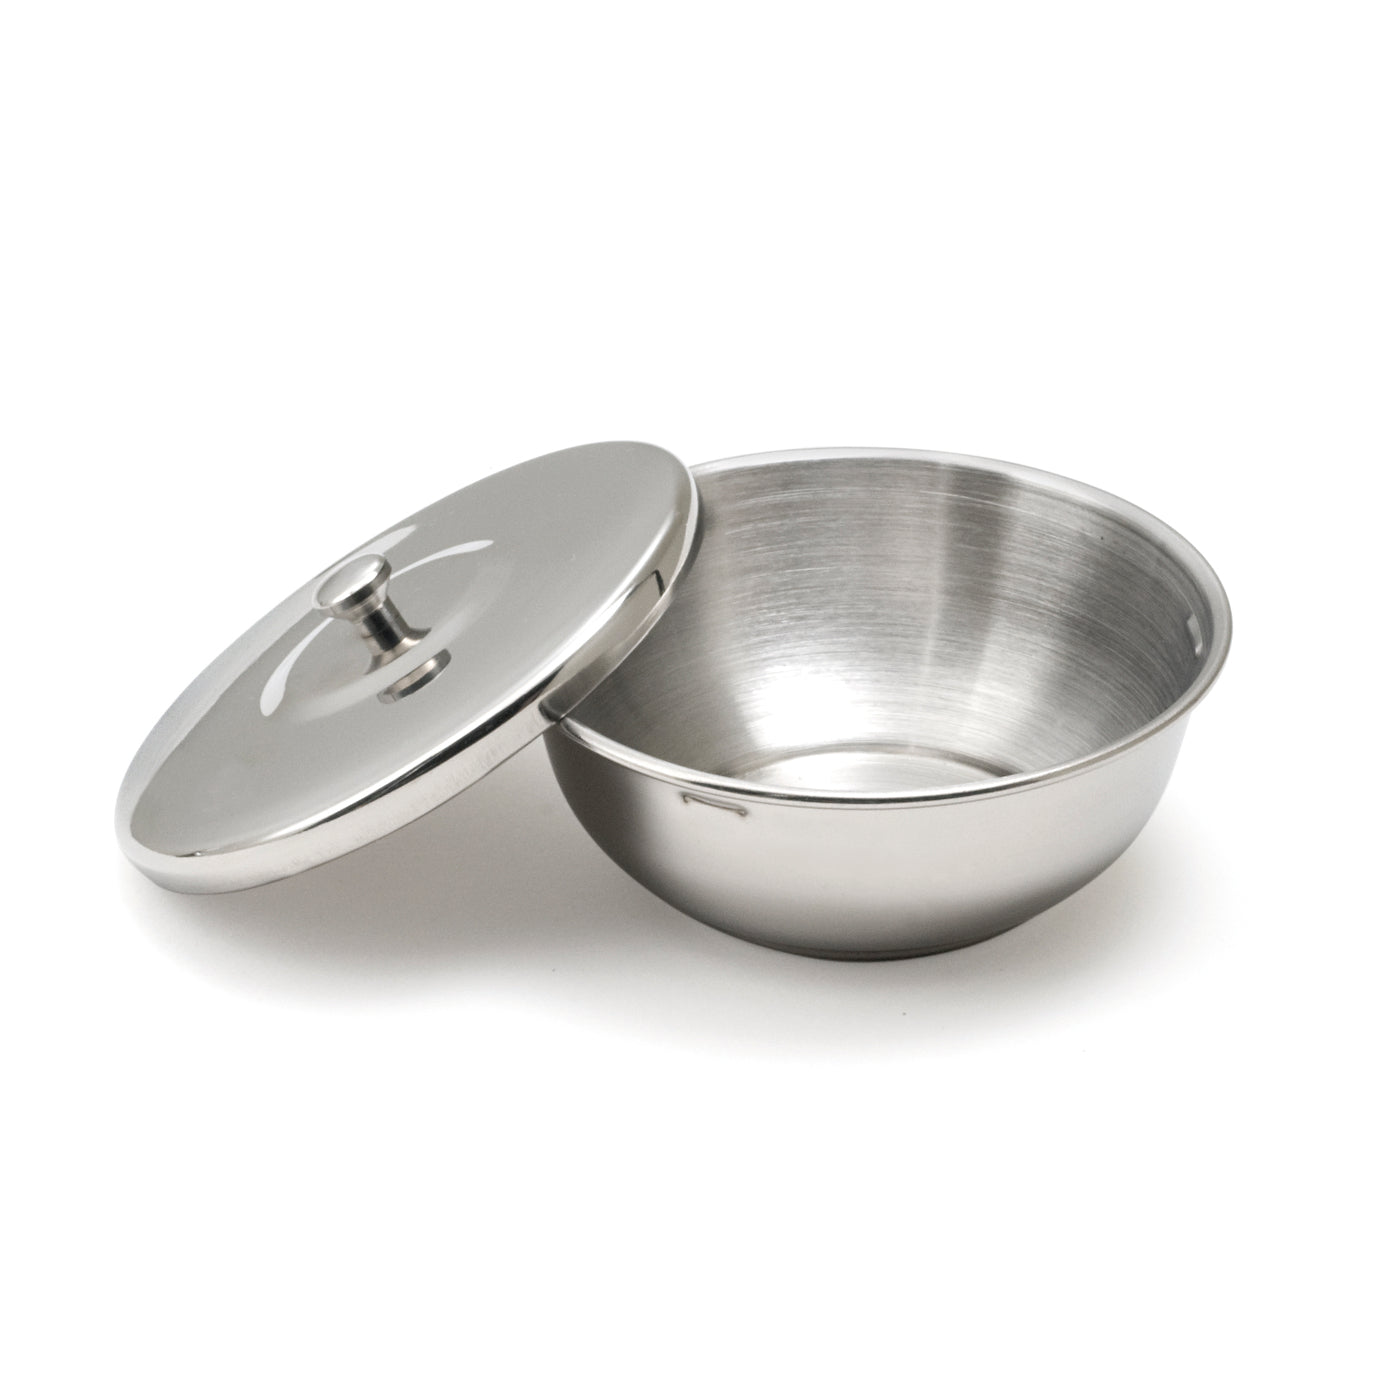 Thiers Issard Stainless Steel Shaving Bowl with Cover